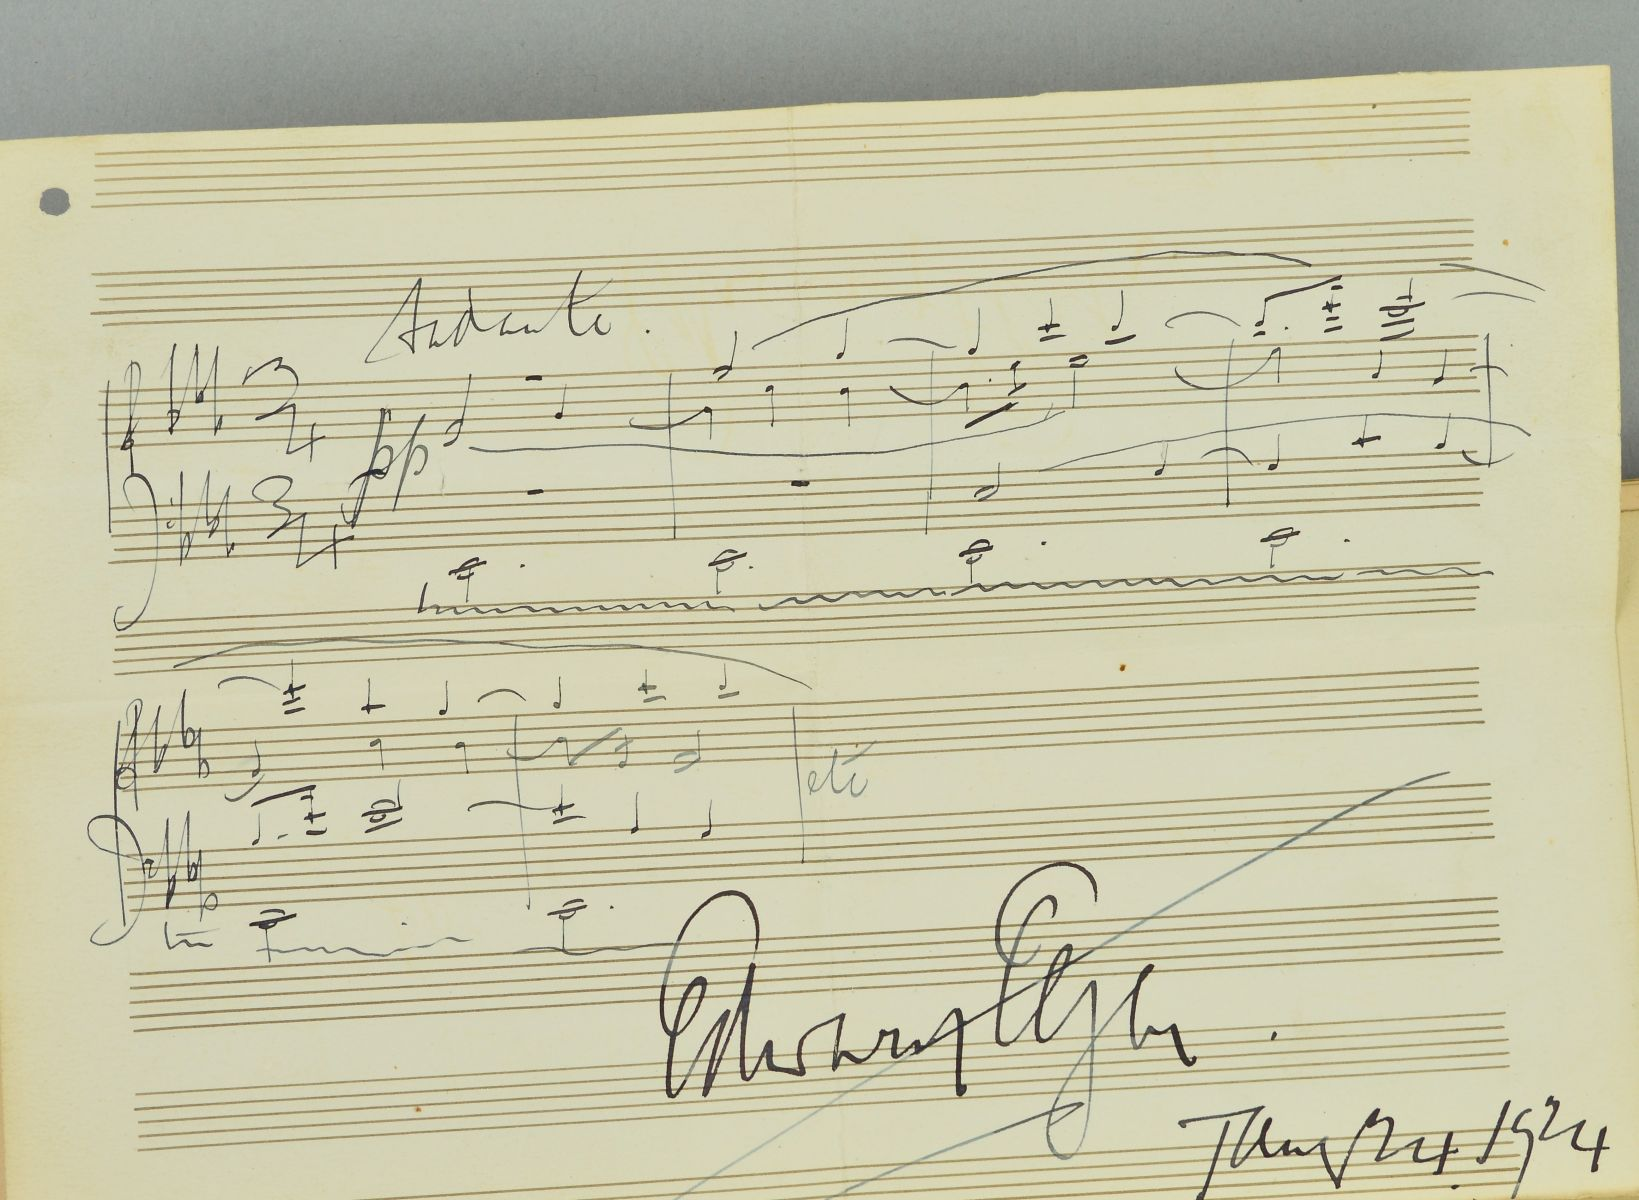 AN AUTOGRAPH COLLECTED IN AROUND 1923 BY MR HERBERT TABB AND MRS LYDIA TABB WORKING ON BEHALF OF - Image 2 of 7